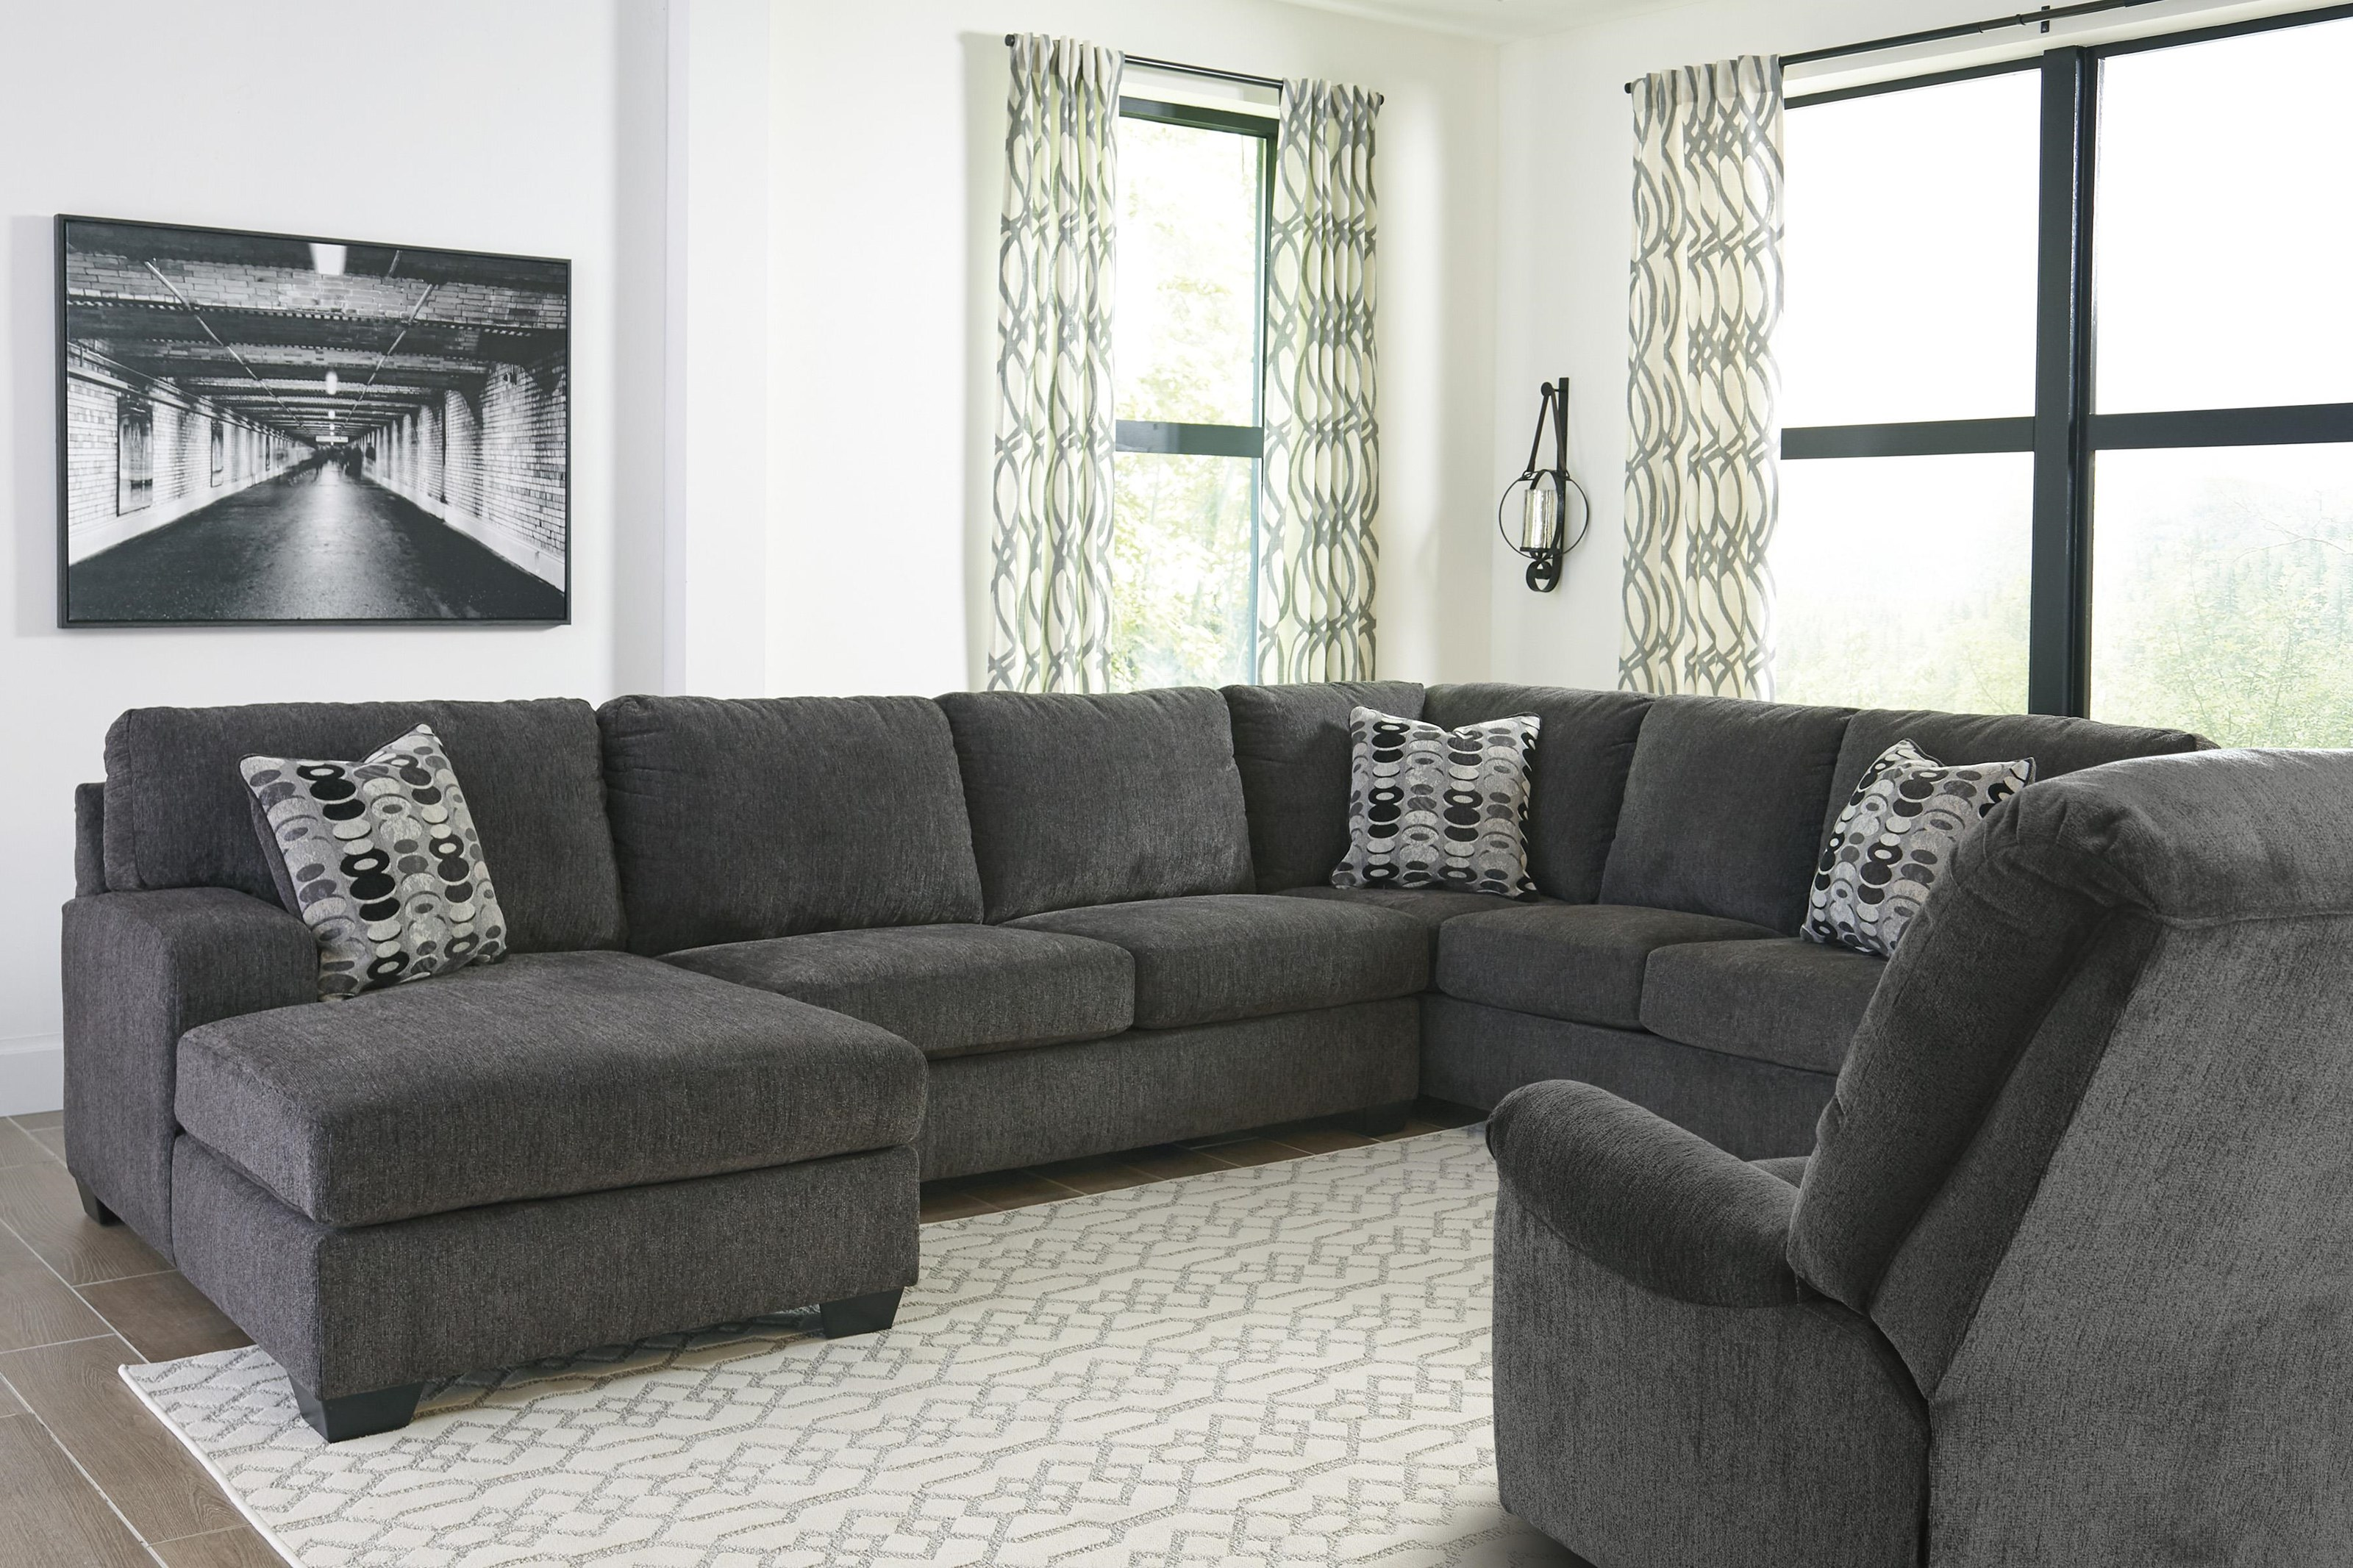 Ballinasloe 3 PC Sectional and Recliner Set by Signature Design by Ashley at Sam Levitz Furniture